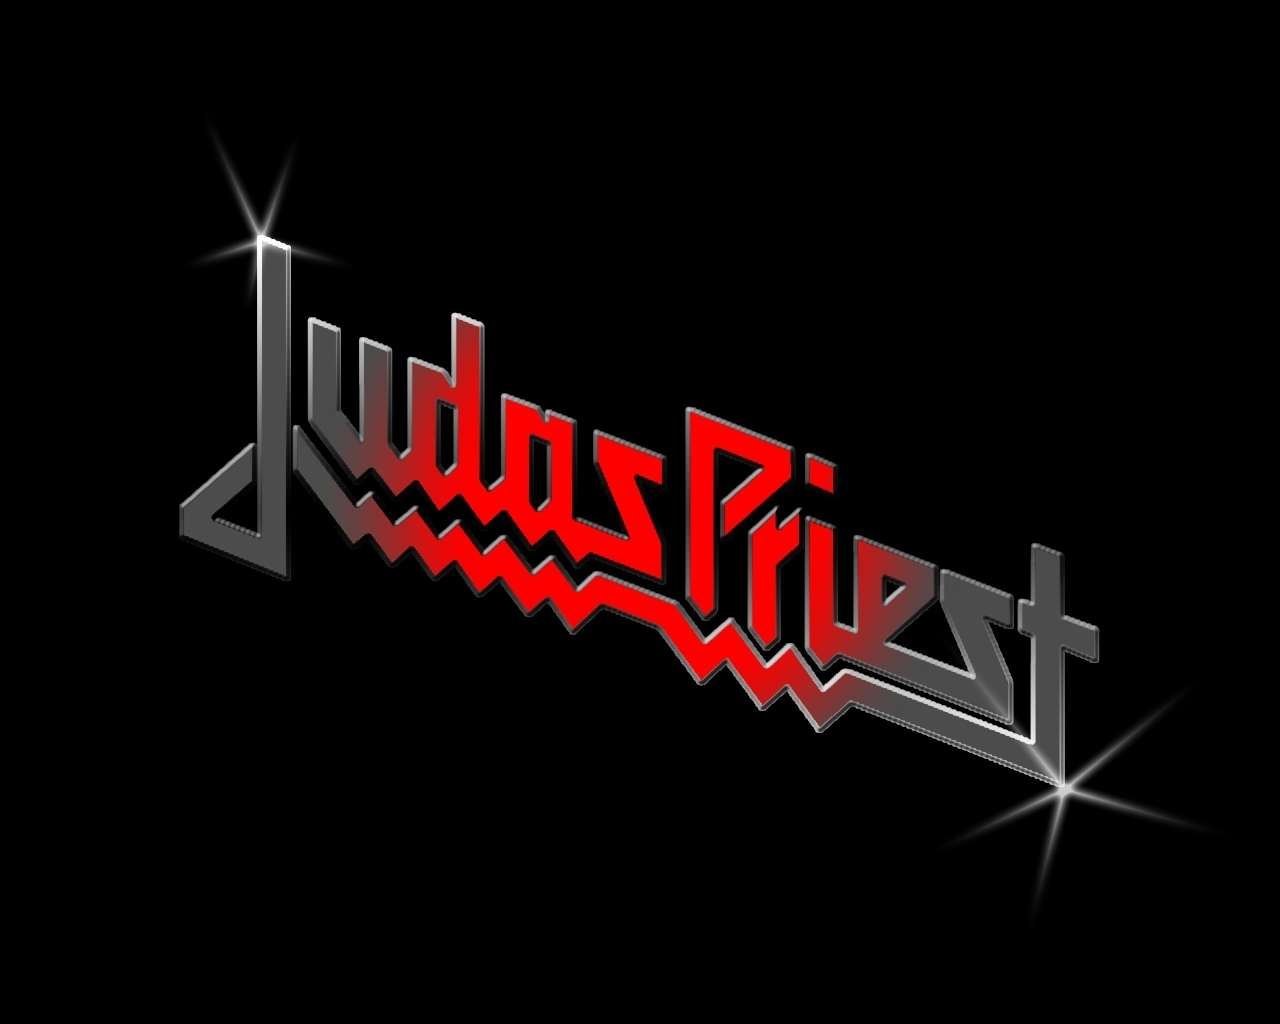 Judas Priest Logo Wallpaper Hd Wallpapers